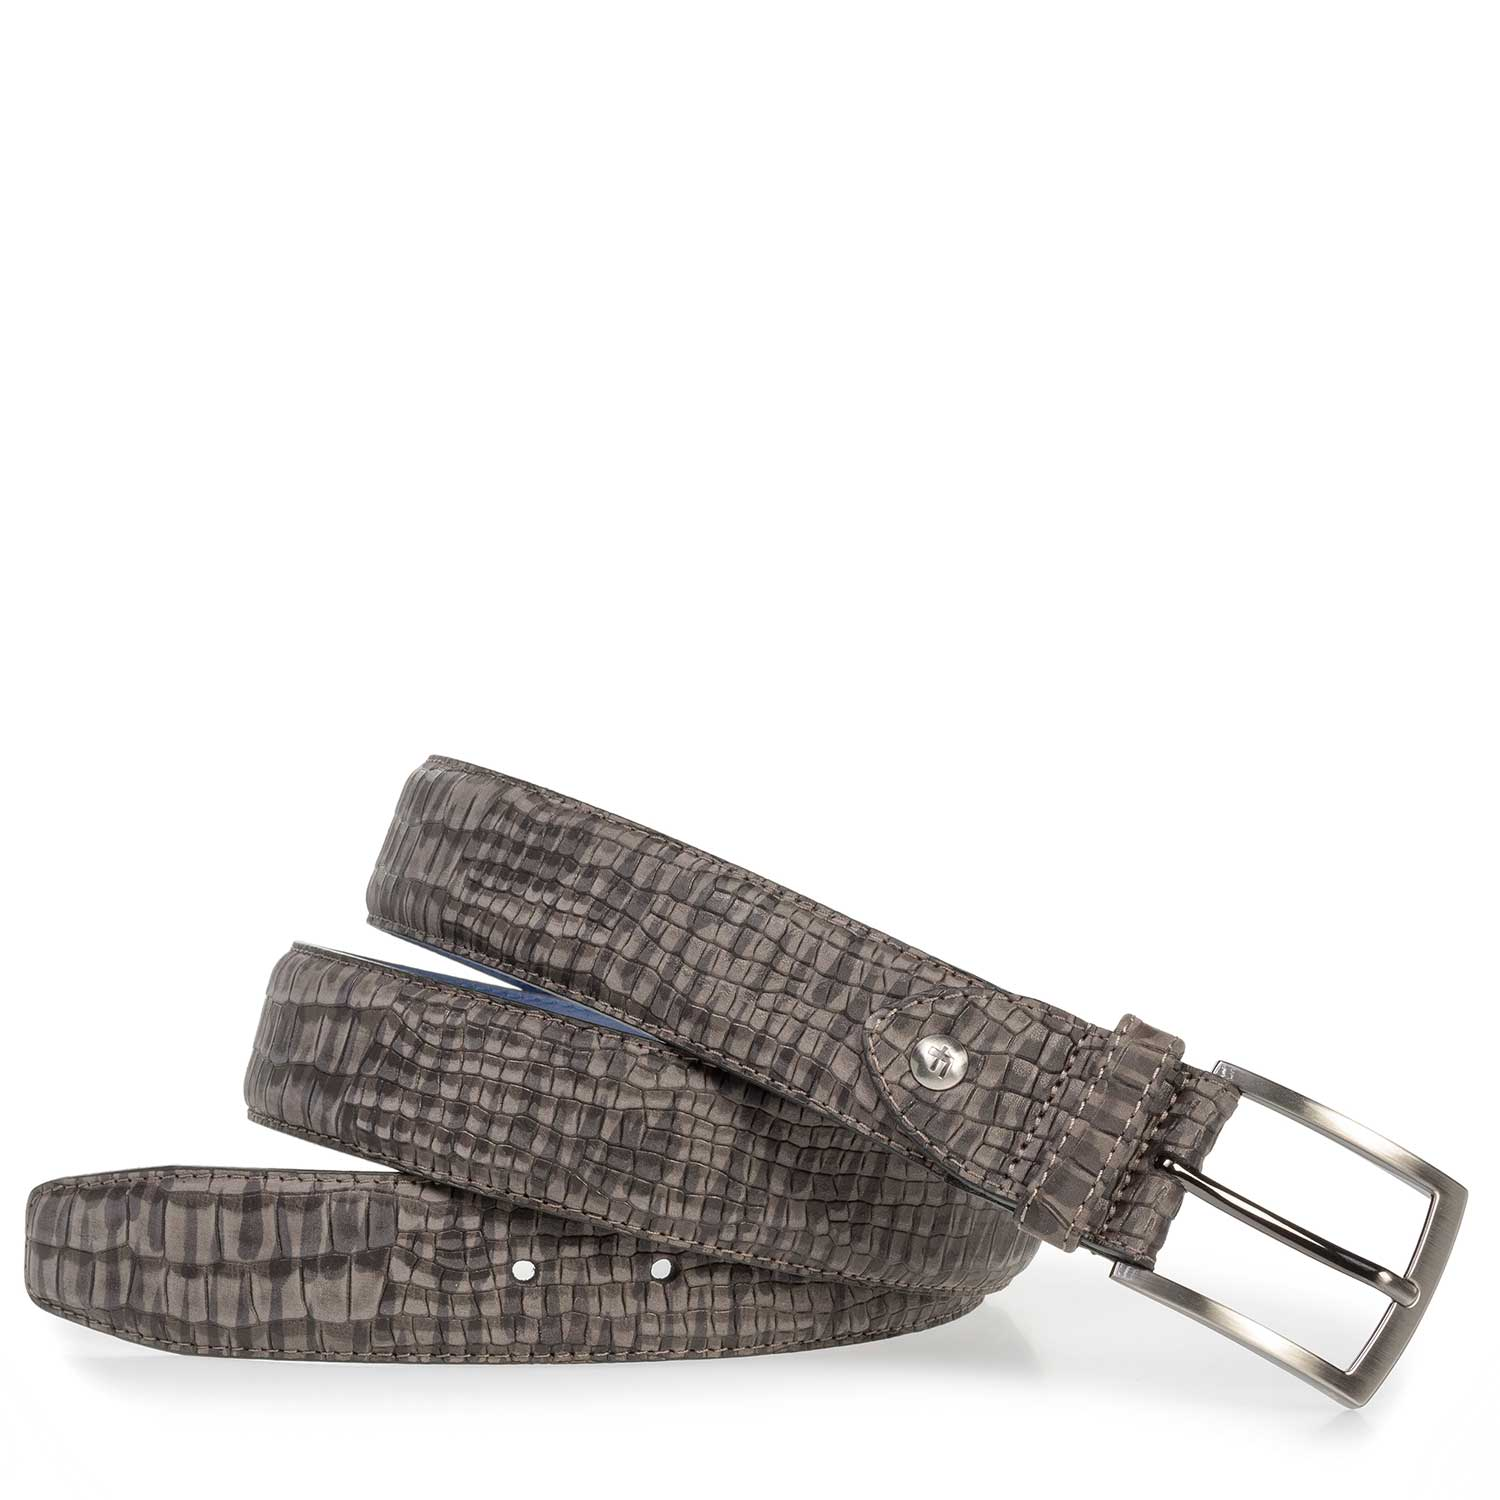 75201/36 - Dark grey nubuck leather belt with croco print